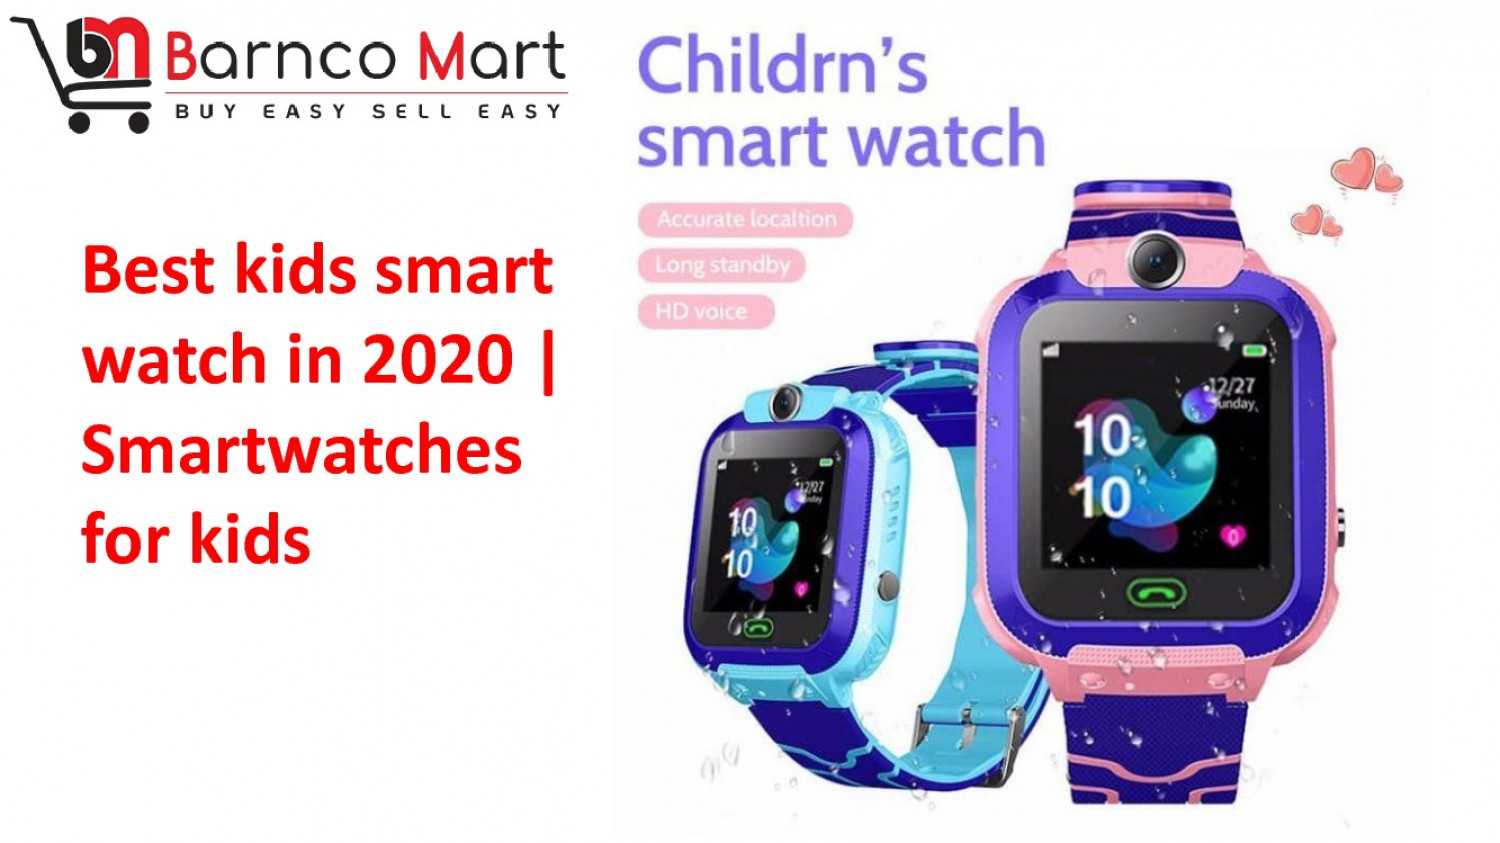 Kids Smart Watch- Barncomart Online Store Infographic